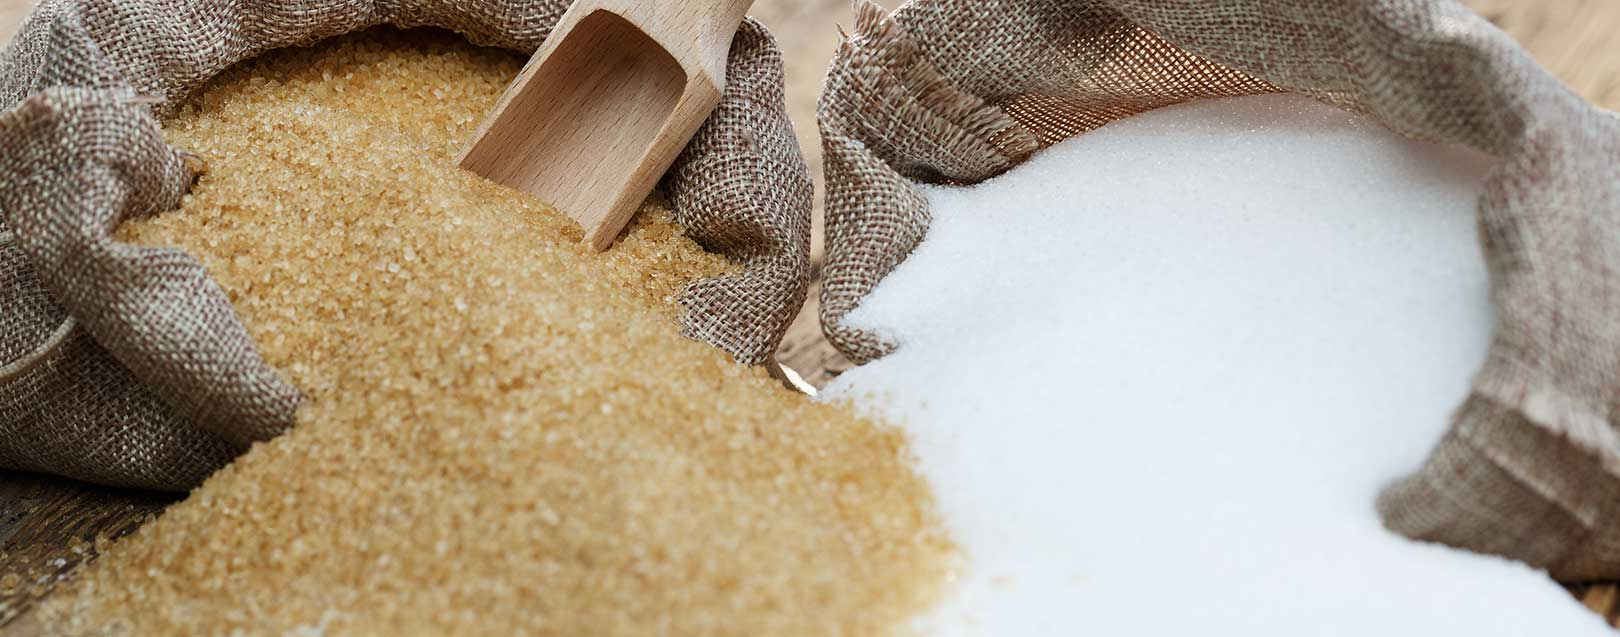 Government likely to hike import duty on sugar to 60%